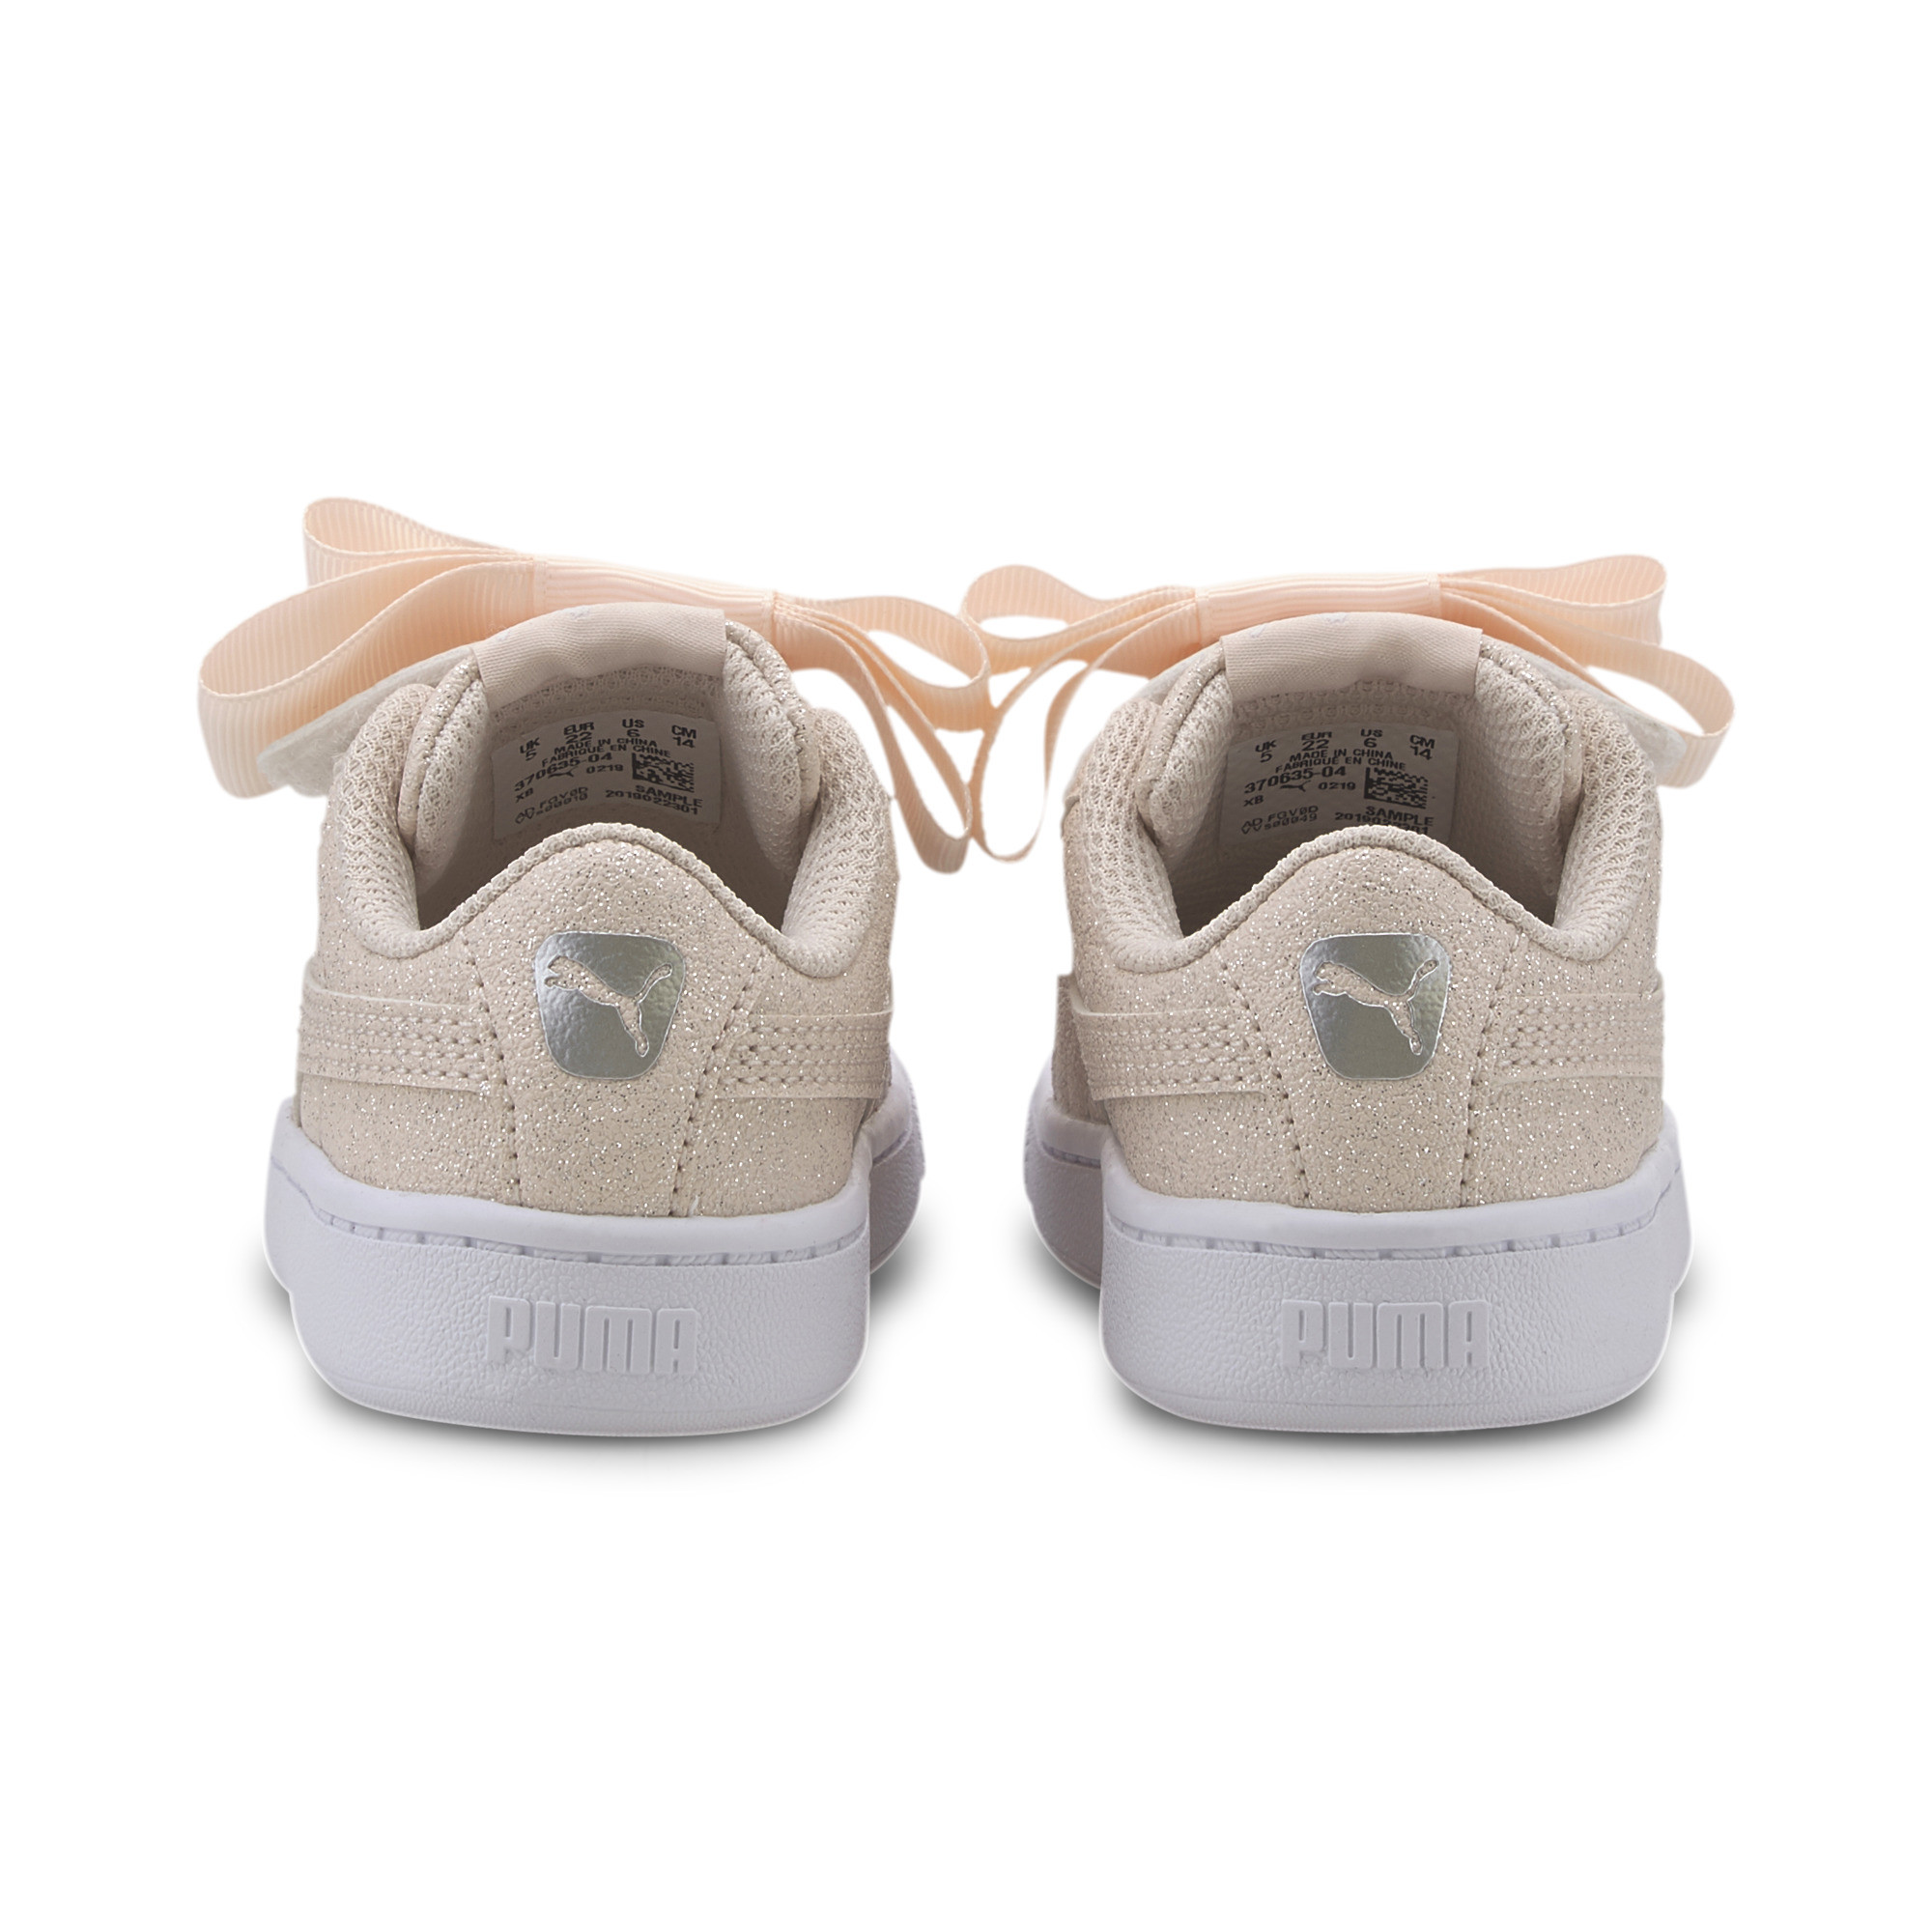 PUMA-Vikky-v2-Ribbon-Glitz-Toddler-Shoes-Girls-Shoe-Kids thumbnail 3